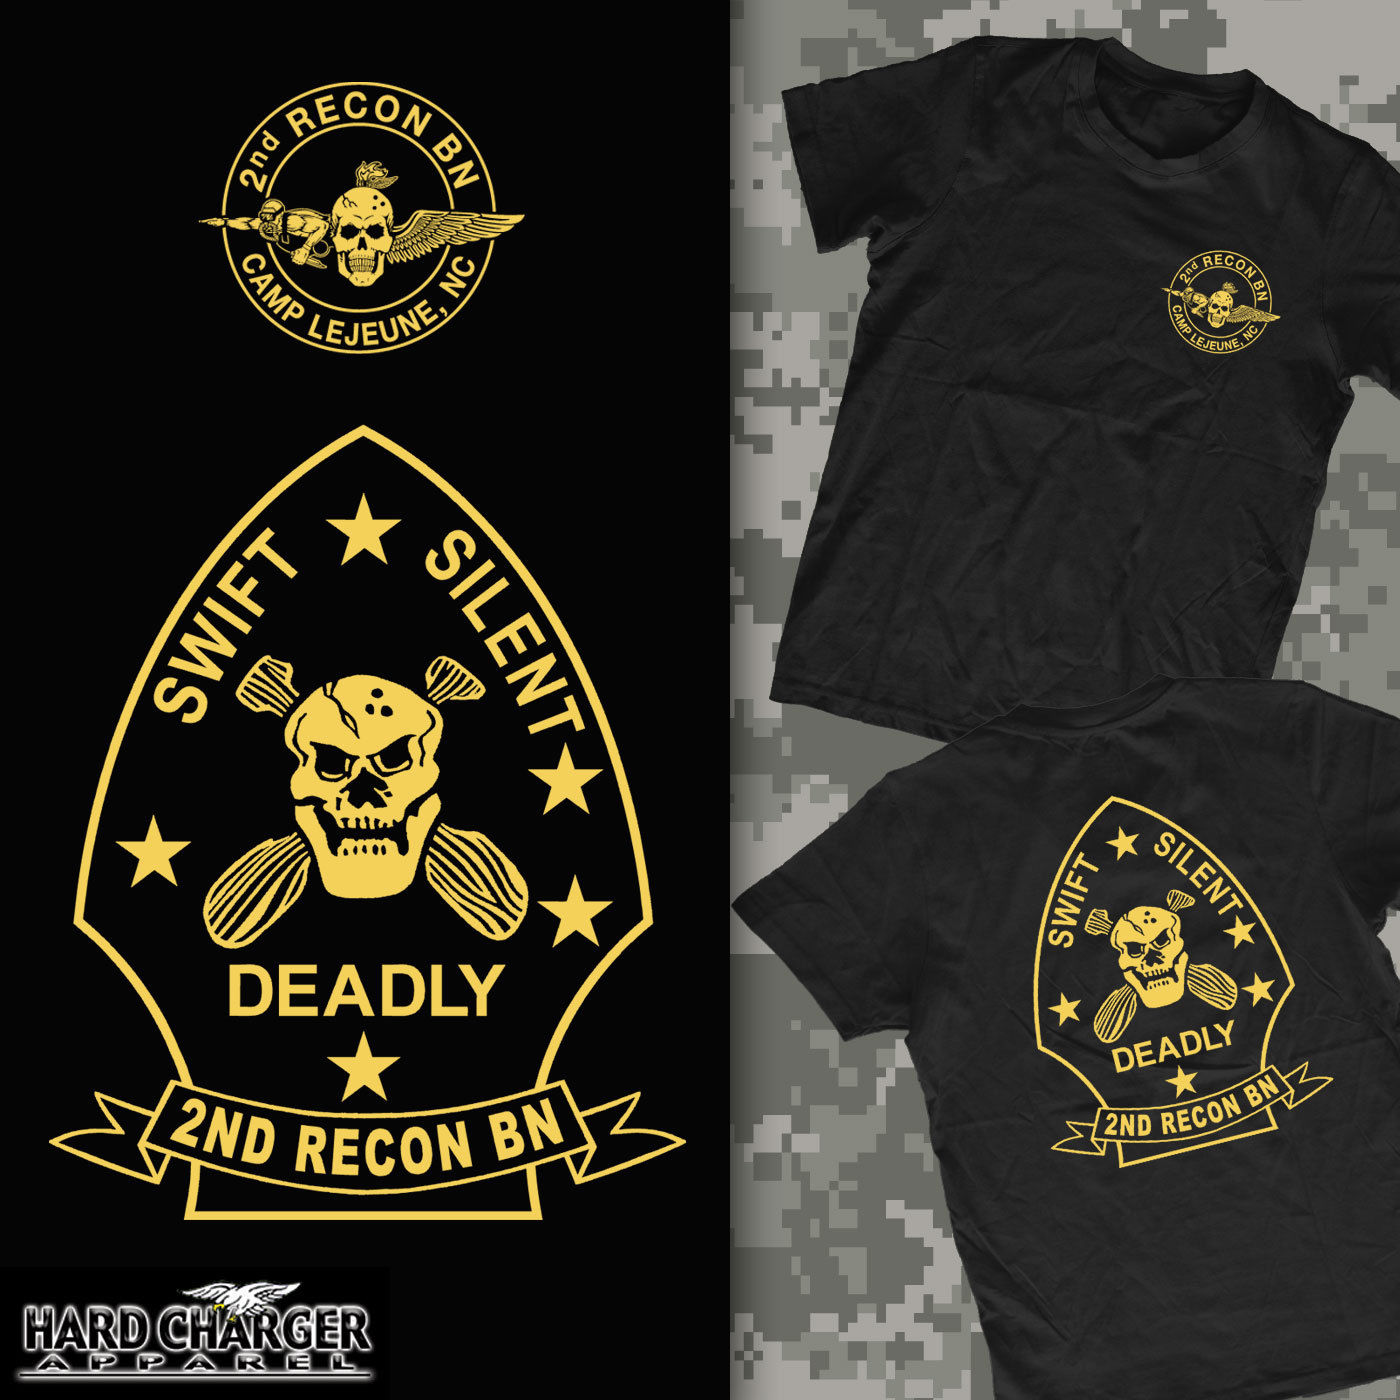 2019 Fashion Hot sale Marine Corp 2nd Recon Battalion Camp Lejeune, NC Onslow Beach <font><b>USMC</b></font> <font><b>T</b></font>- <font><b>shirt</b></font> <font><b>T</b></font> <font><b>shirt</b></font> image